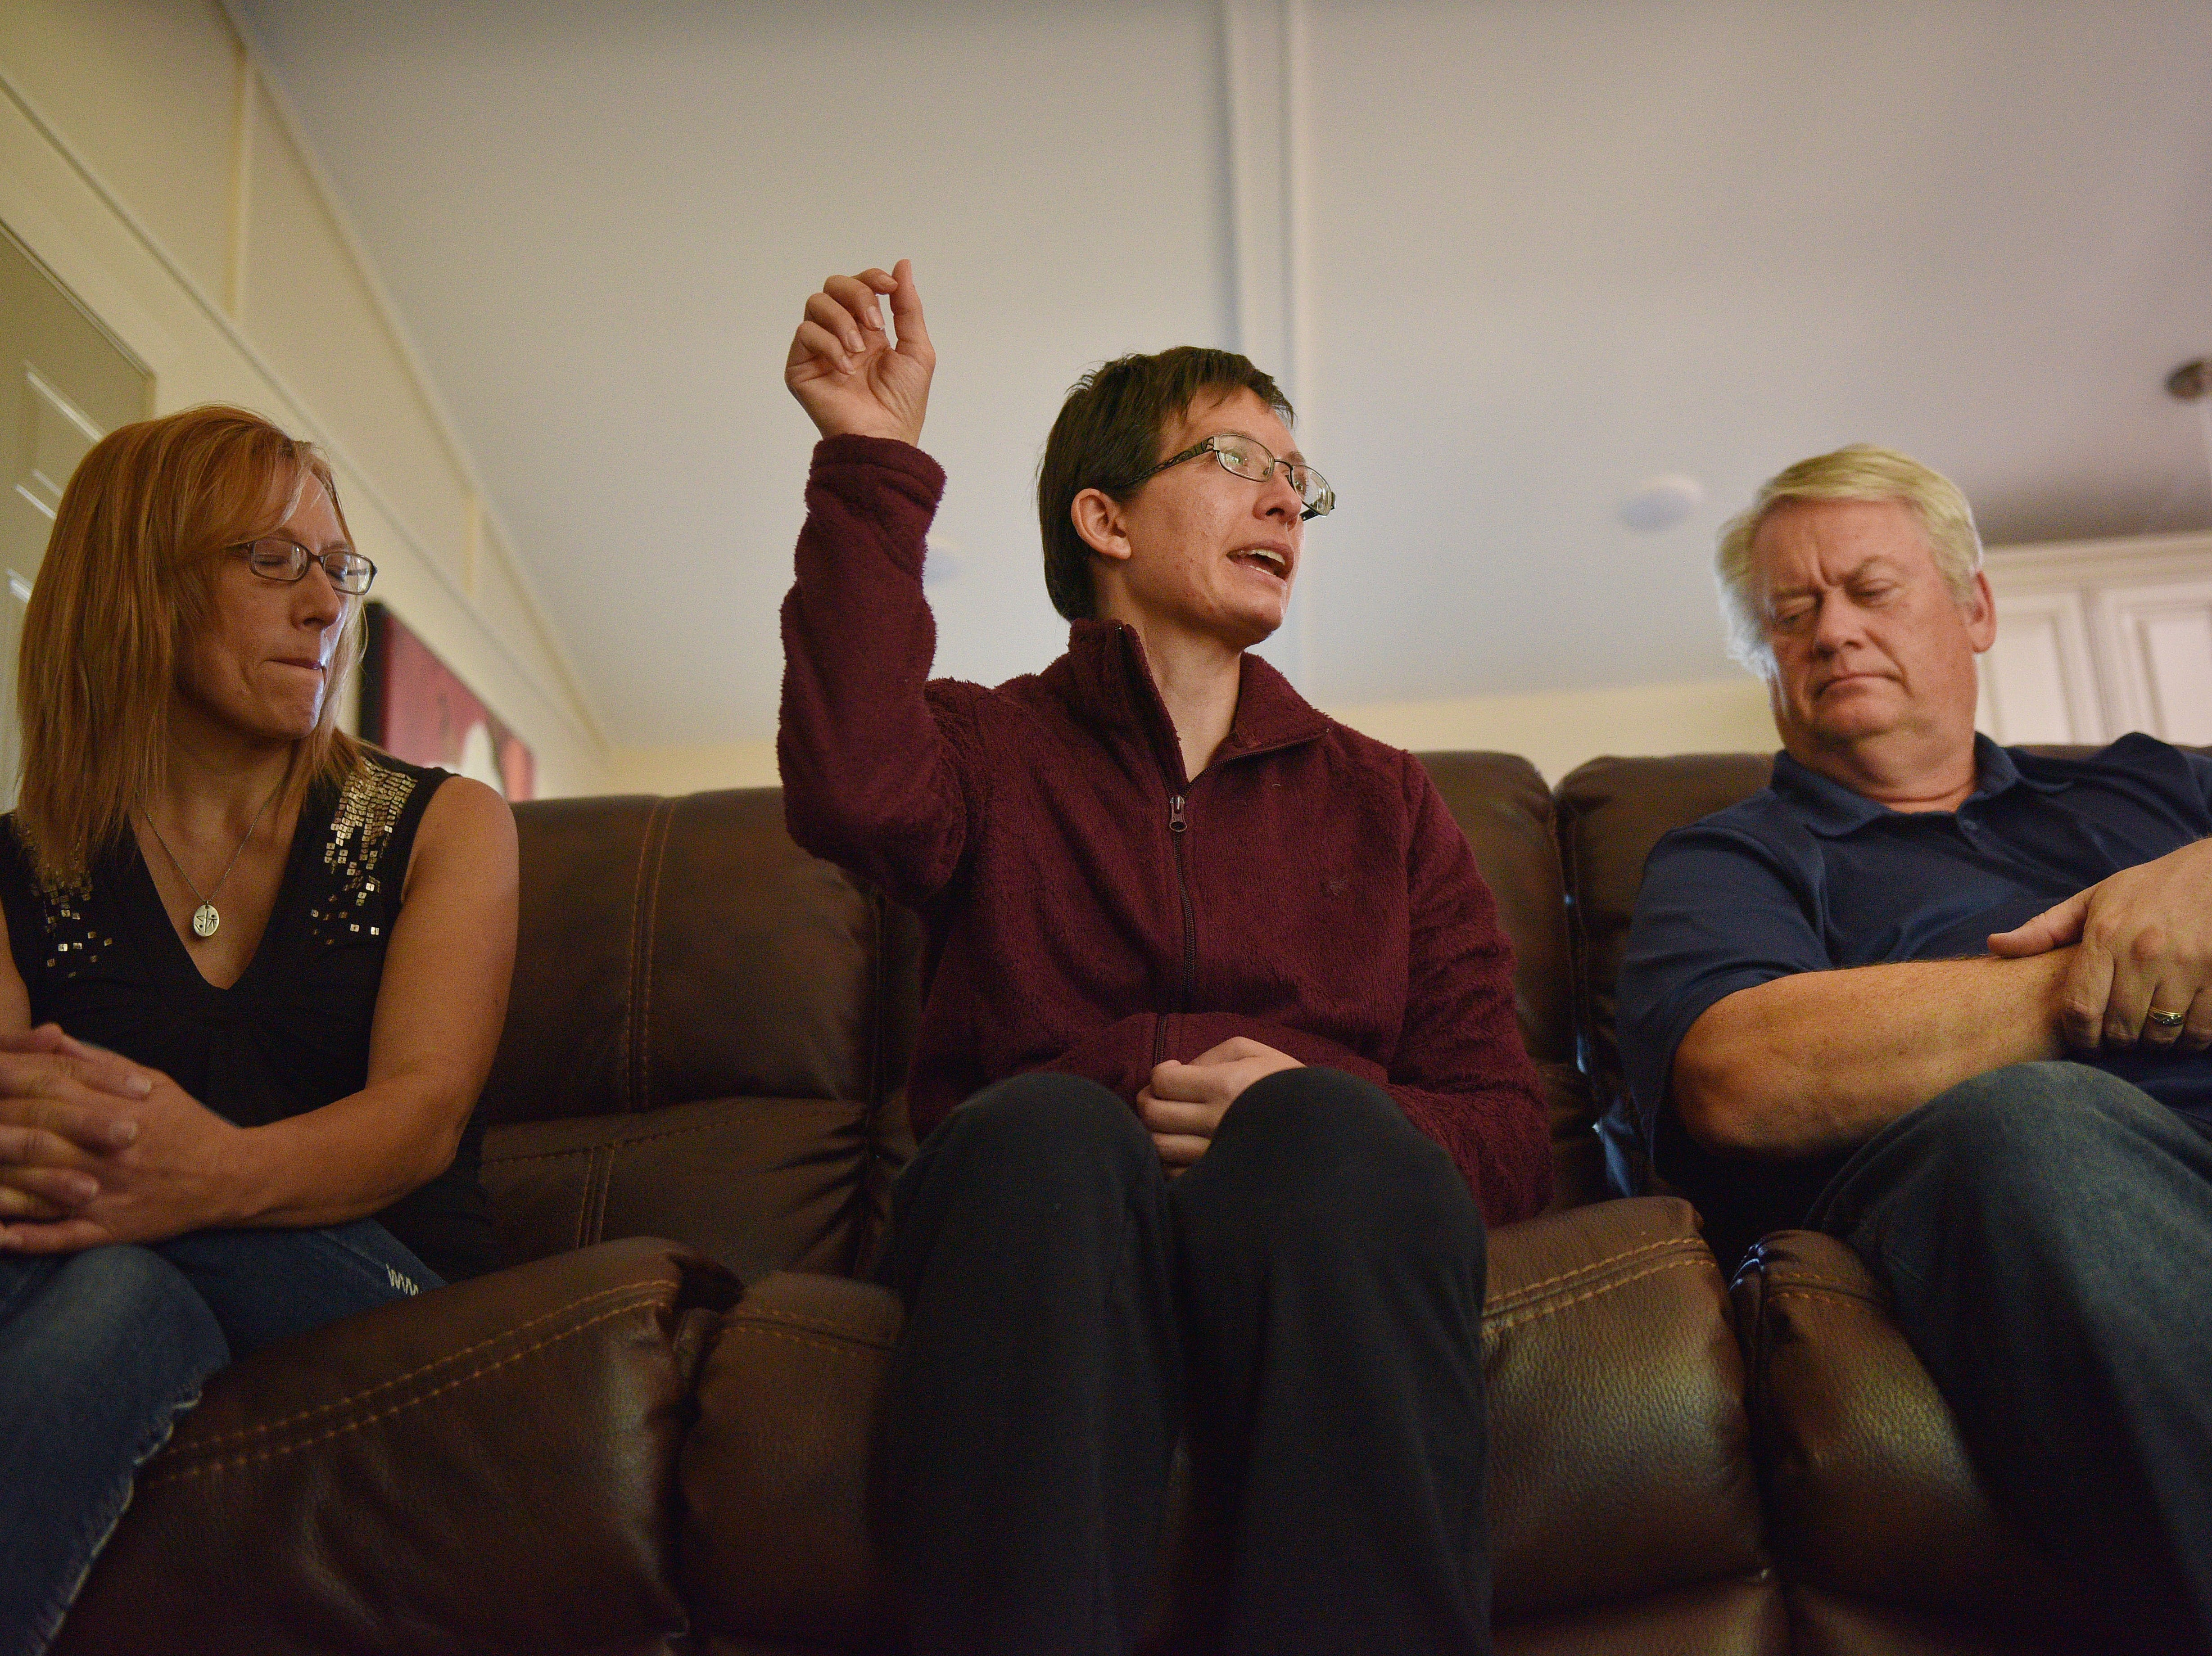 Ashley's mom Linda Van Hemert, from left, Ashley and her dad Lyle talk about Ashley's recovery Friday Sept. 28, at their home in Sioux Falls. Ashley talks about how it's harder for her to move her left arm now so she is focusing on getting to be as strong as her right arm.